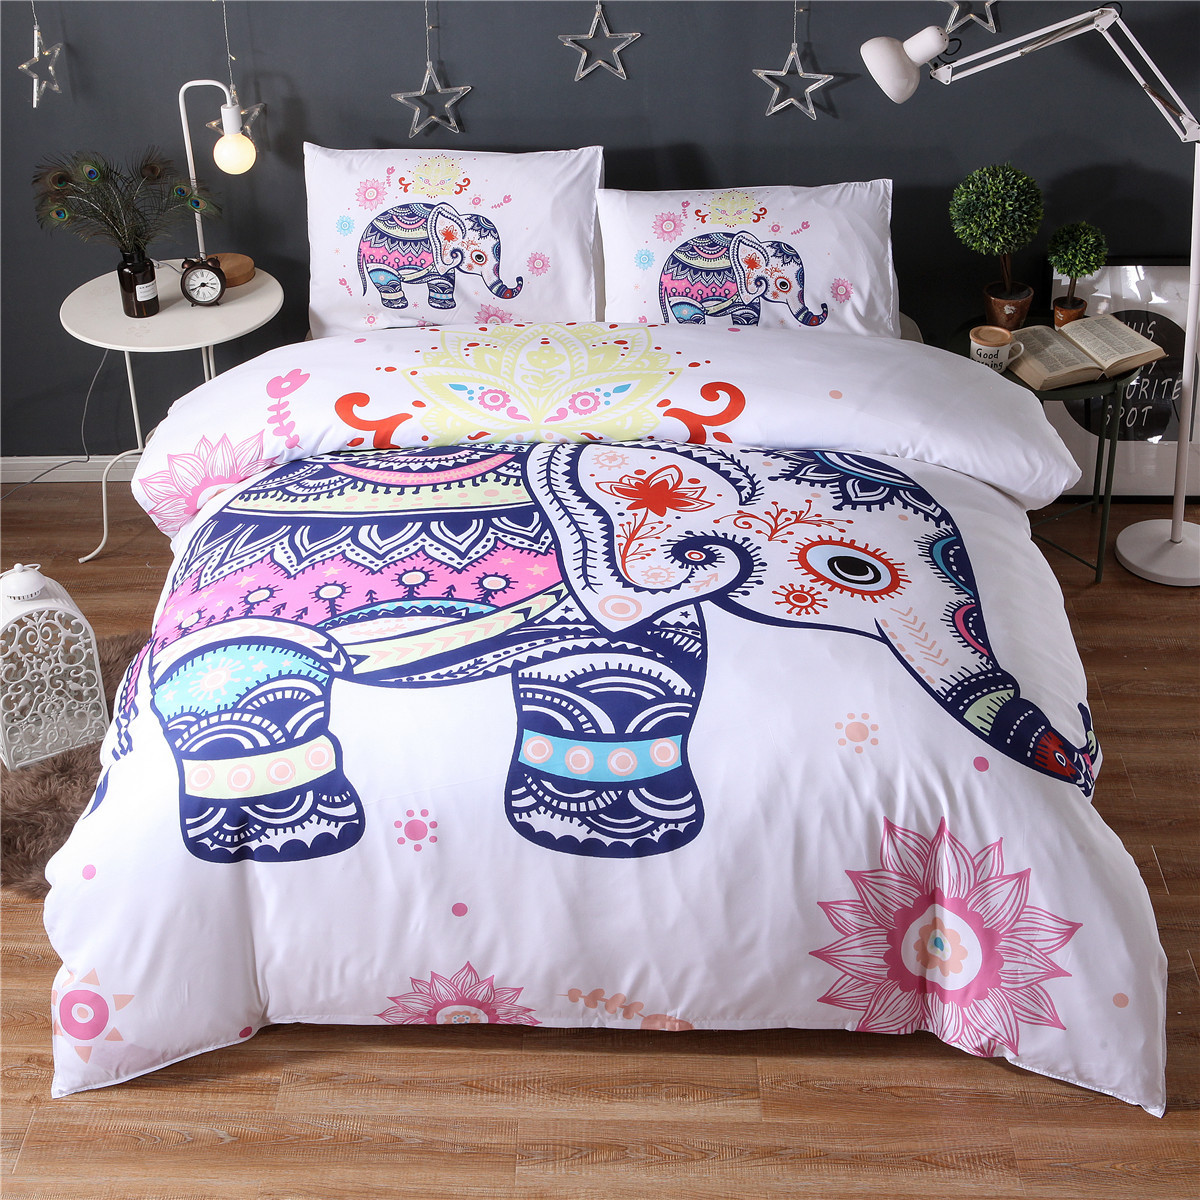 Bedding Set 3D Colorful Bohemian Print Duvet Cover And Pillowcase Indian Elephant Exotic Bedclothes Twin King Queen Size